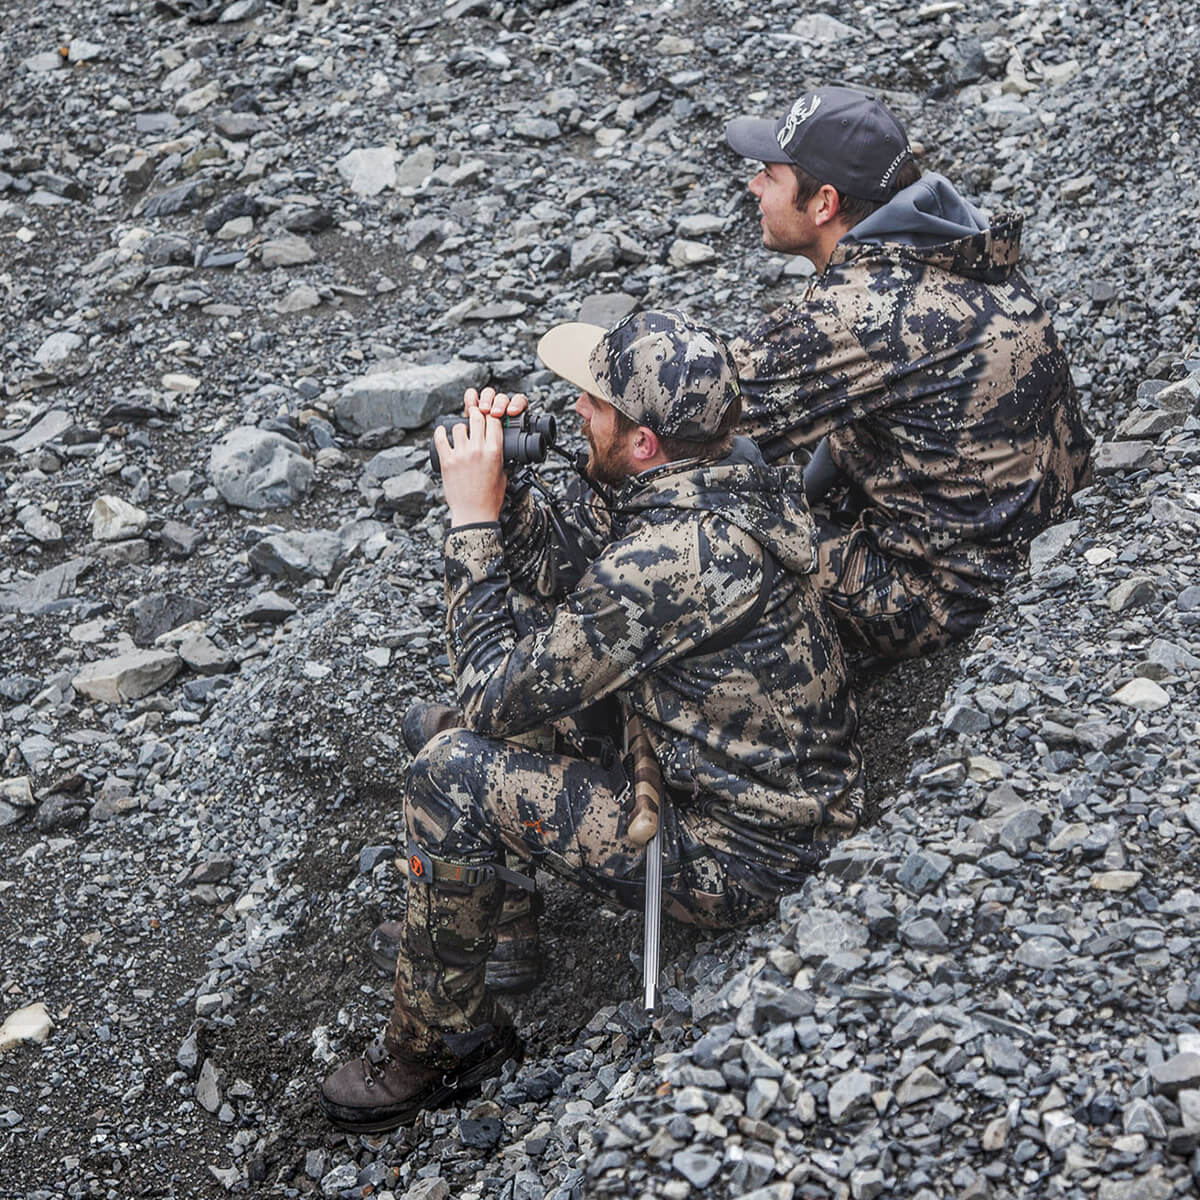 Hunters with the Swedteam Desolve® camouflage